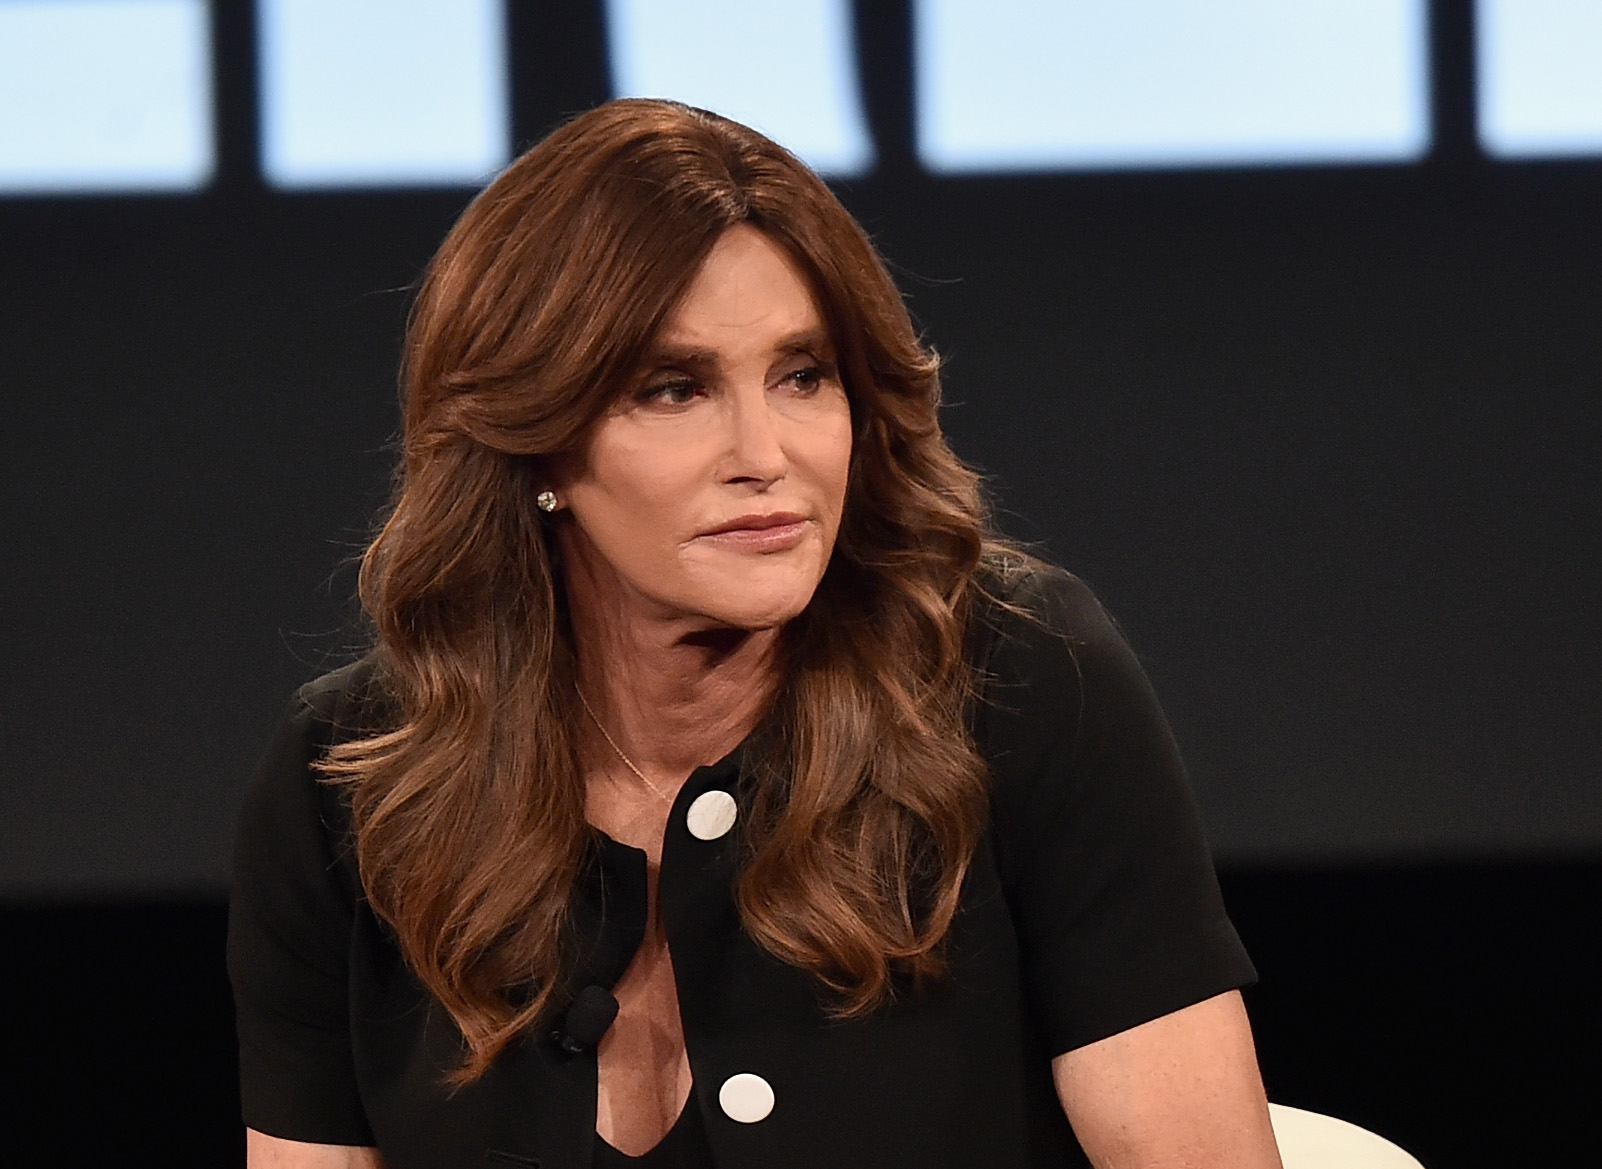 Caitlyn Jenner speaks at the AOL 2016 MAKERS conference at Terranea Resort on February 2, 2016 in Rancho Palos Verdes, California